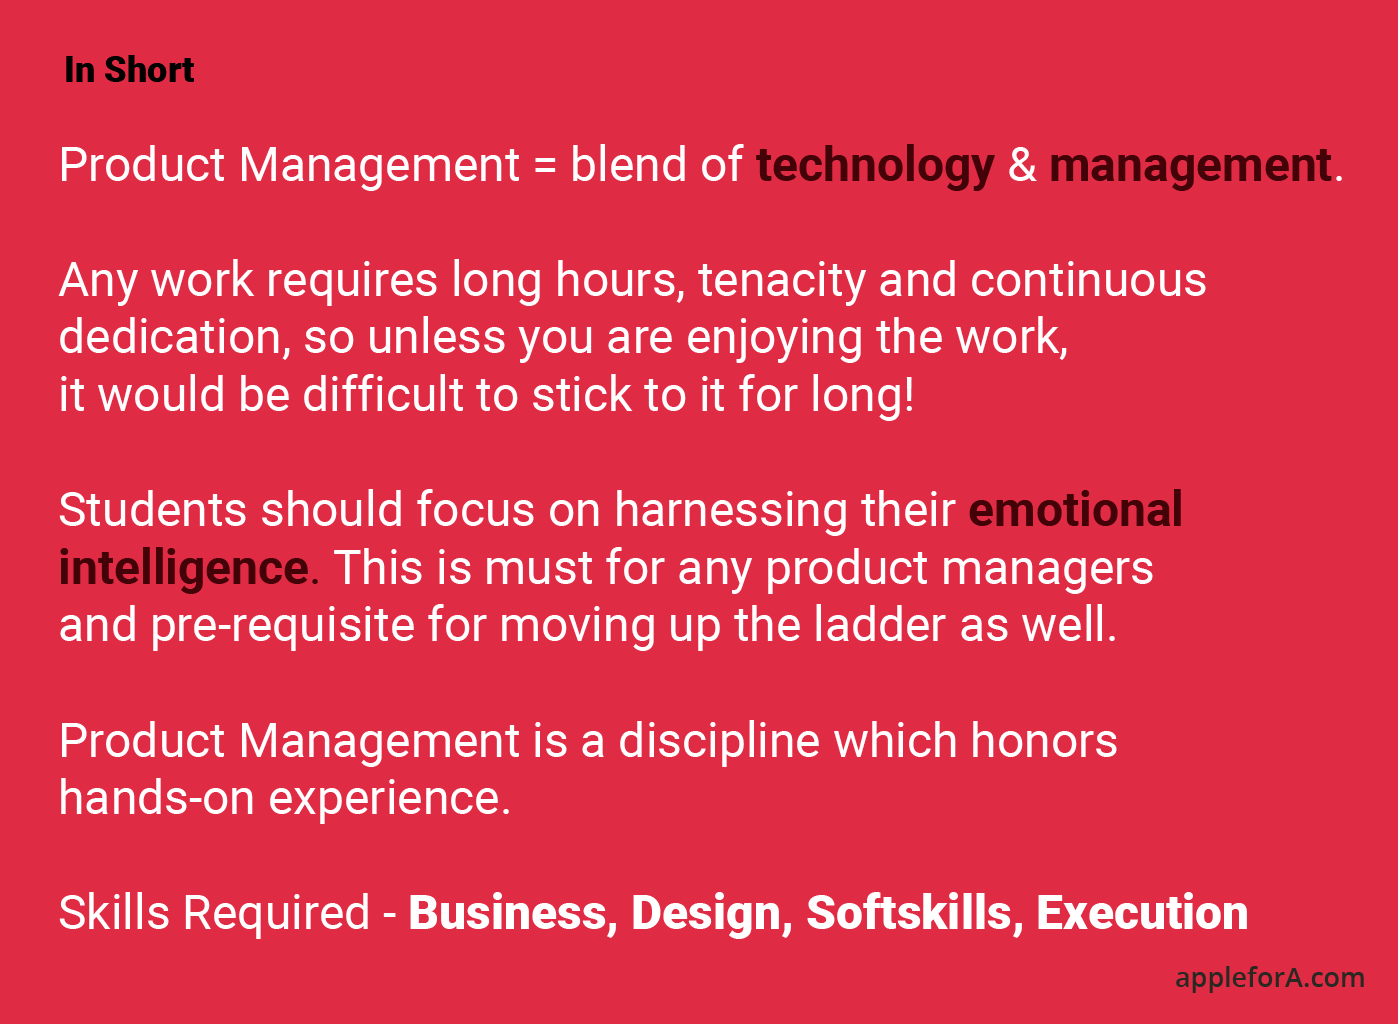 Product Management = blend of technology & management